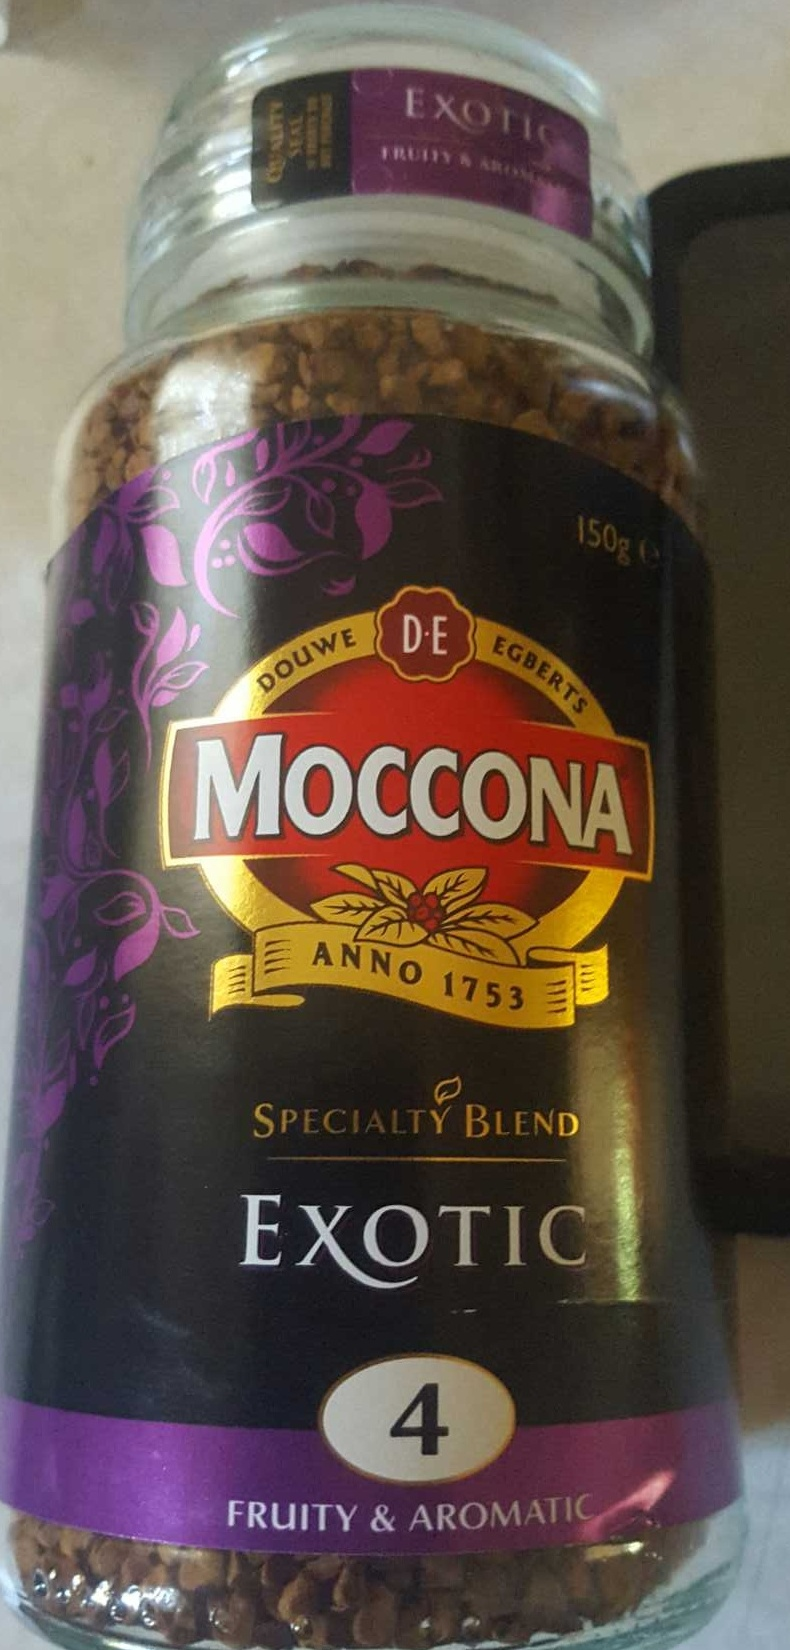 Moccona Exotic - Product